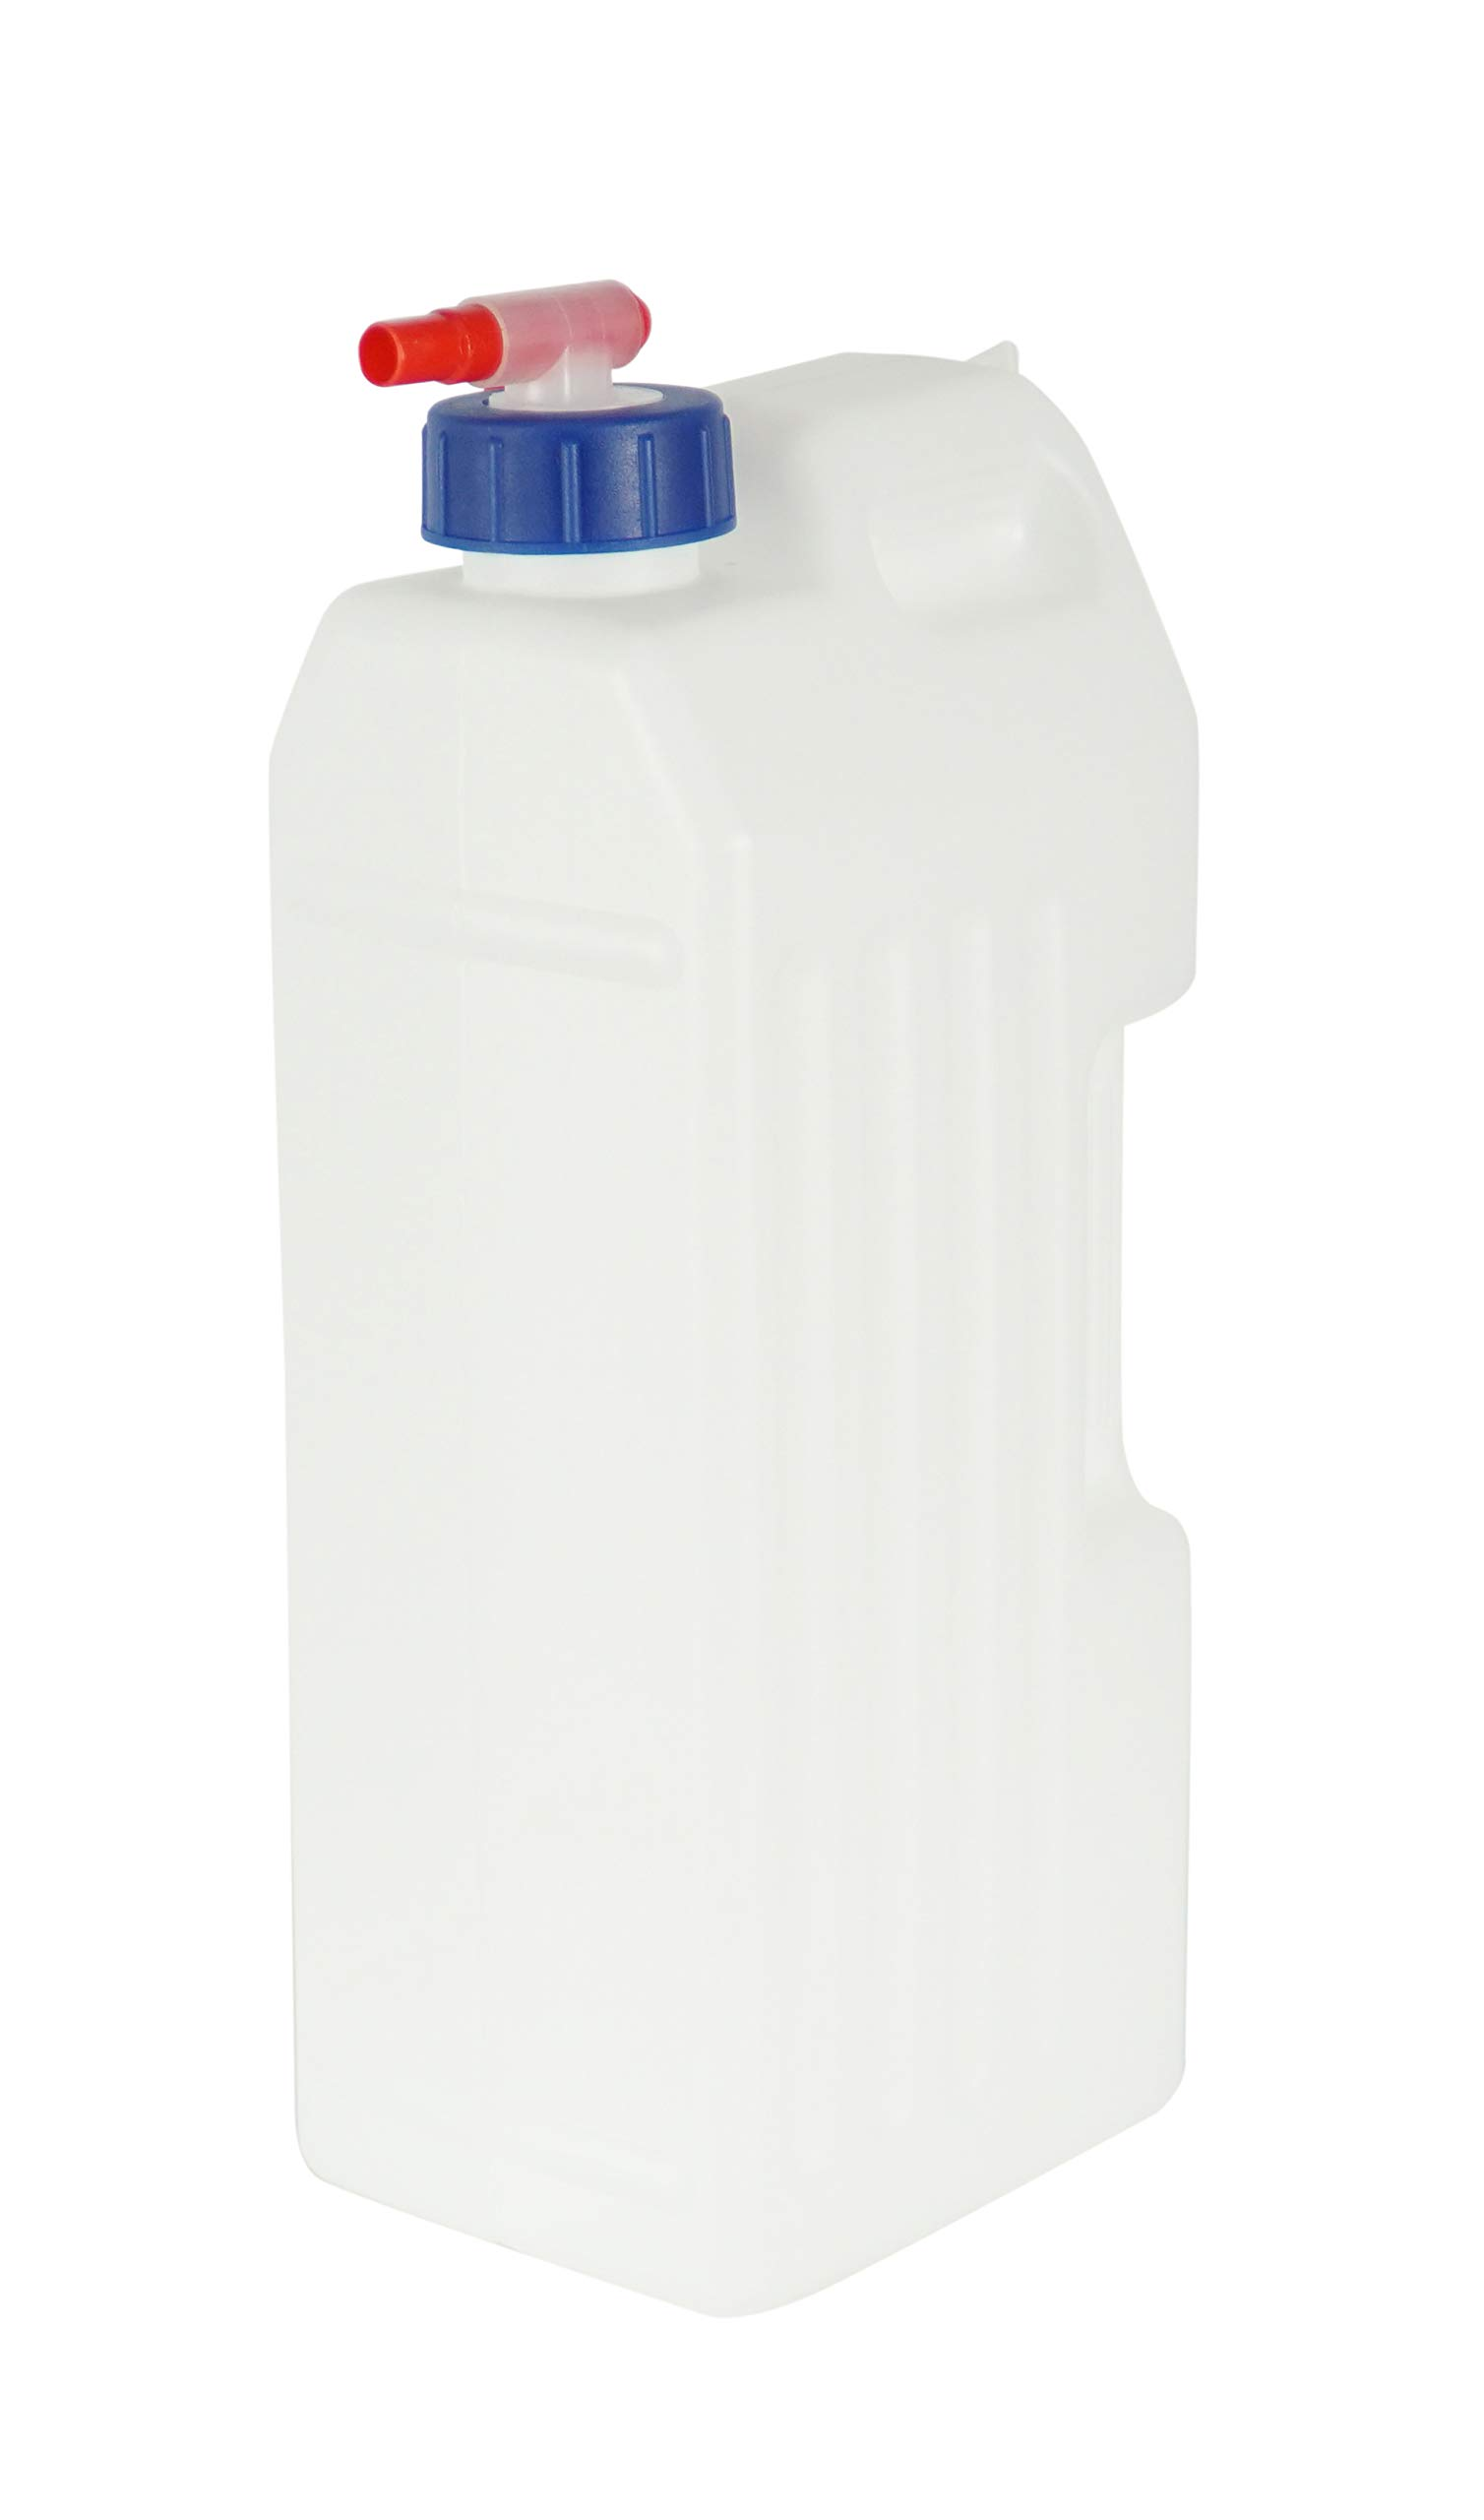 HOME-X Refrigerator Water Jug, Large Cold Beverage Dispenser with Spout, 3 Liters